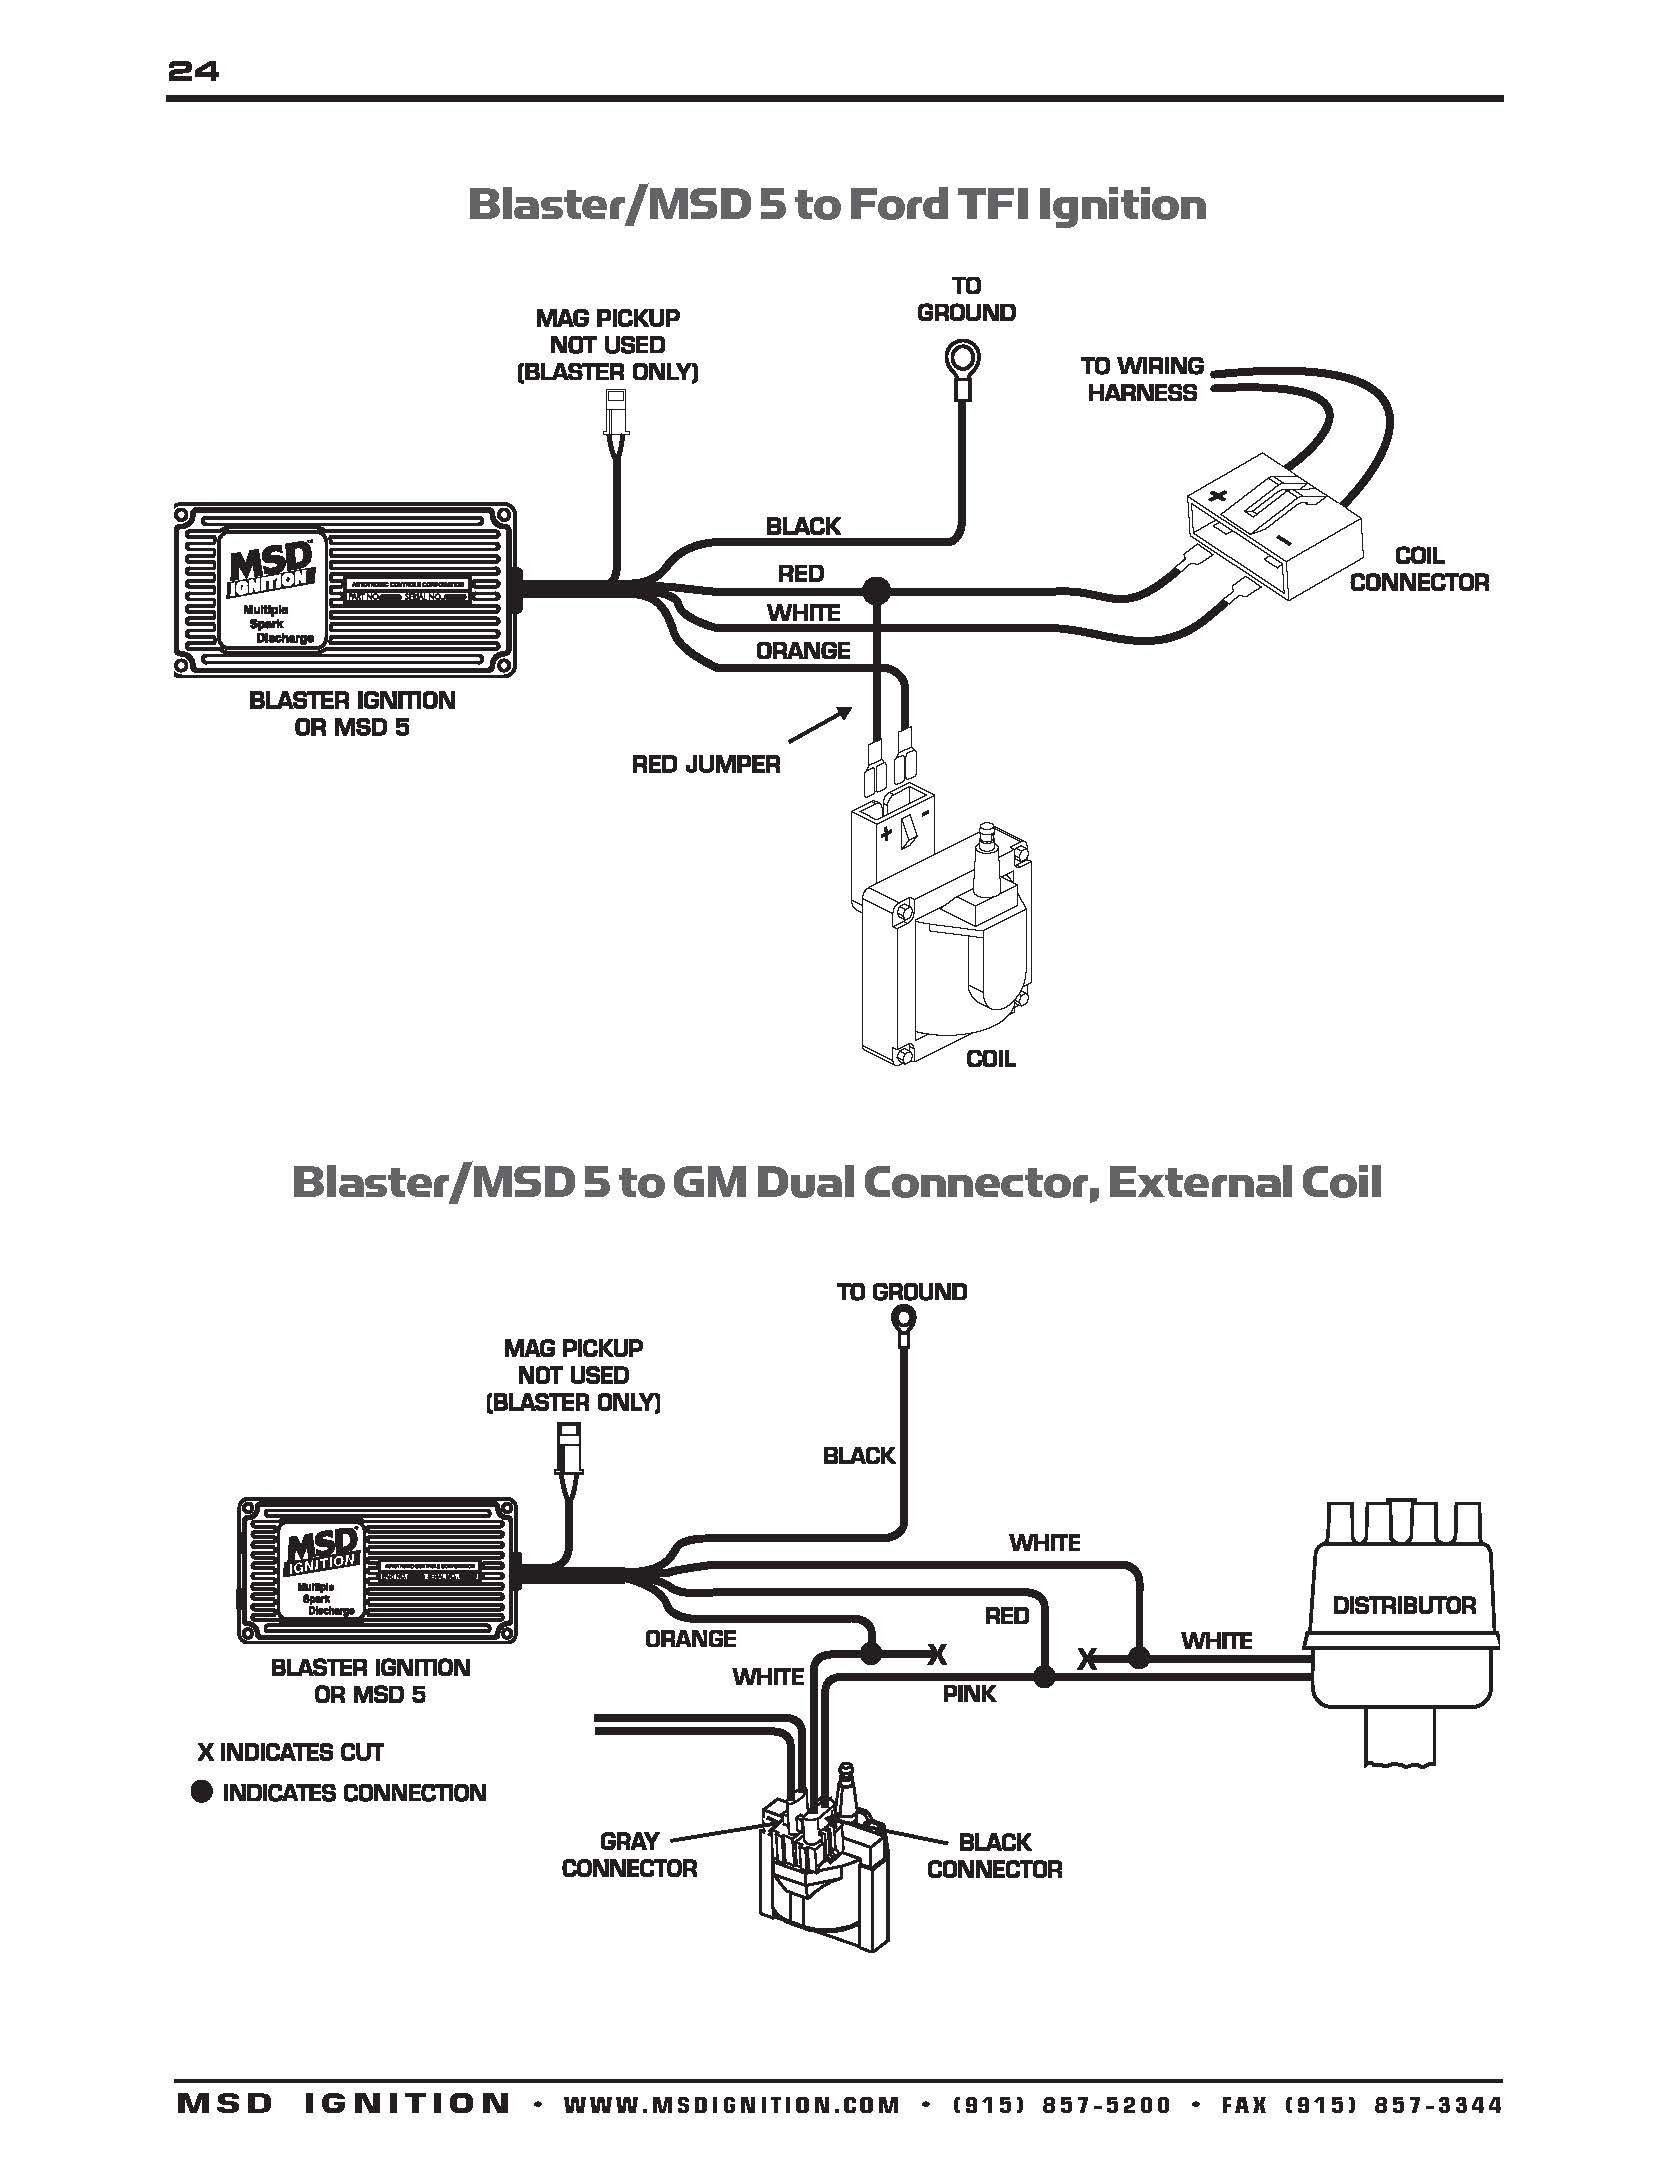 Briggs And Stratton Ignition Coil Wiring Diagram | Manual E-Books - Briggs And Stratton Ignition Coil Wiring Diagram